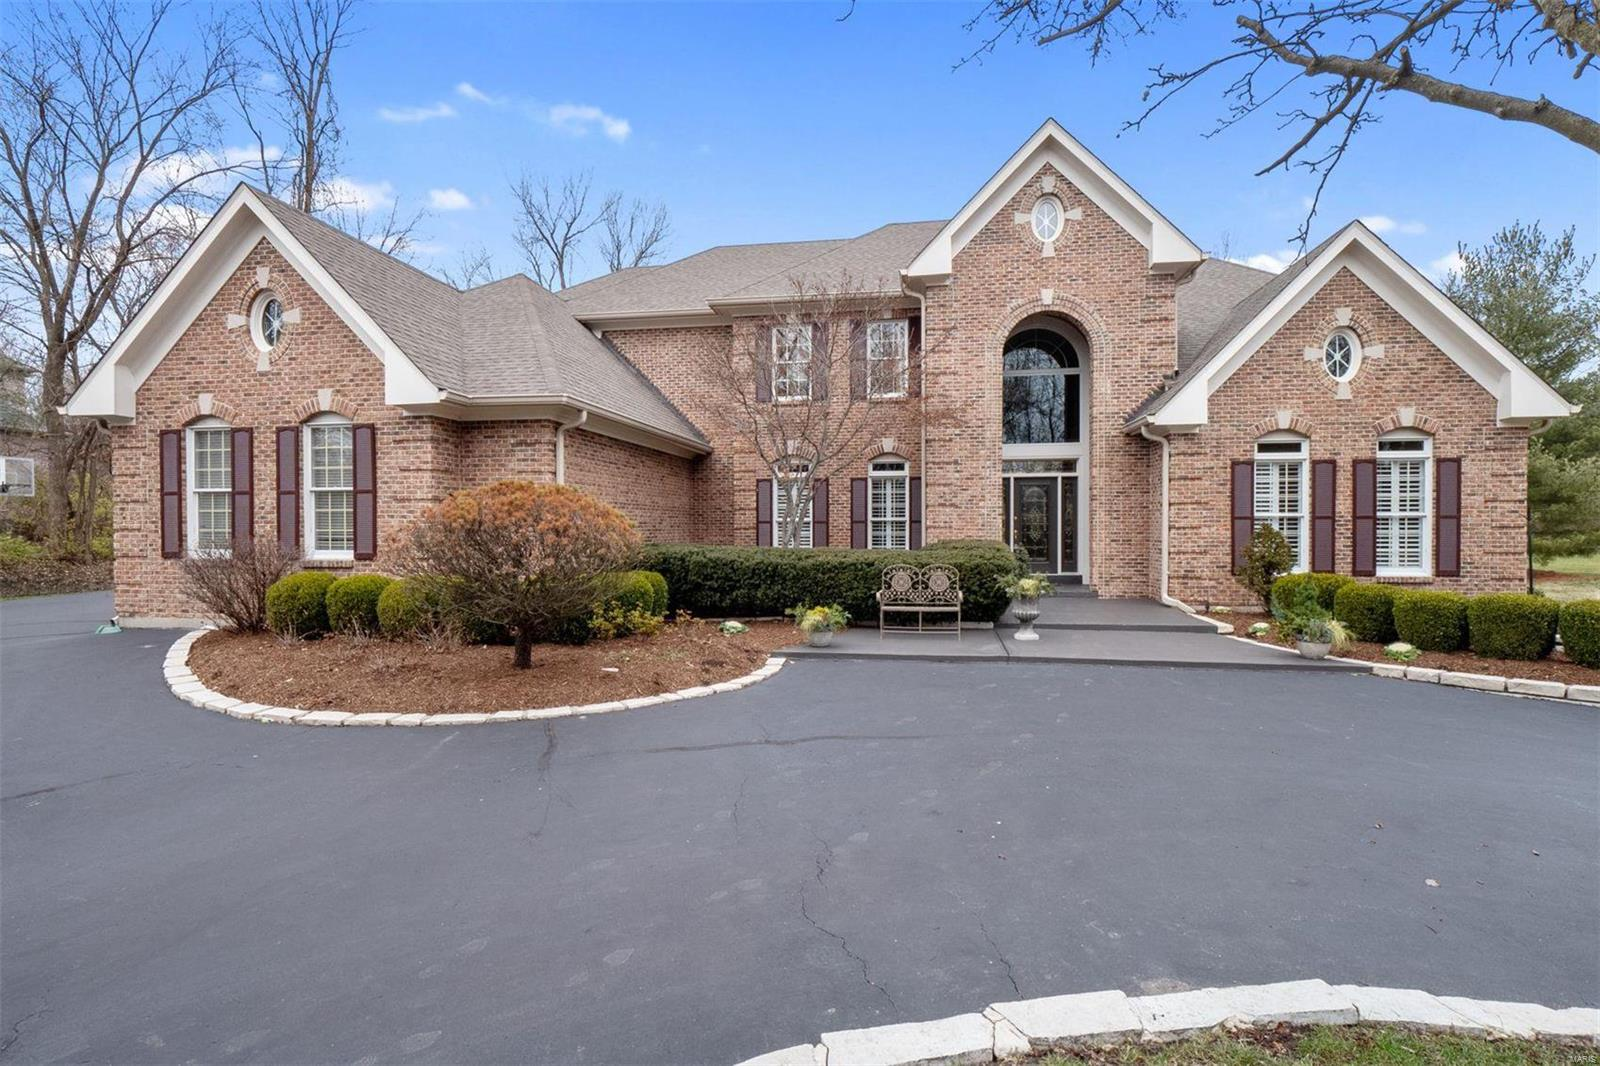 11339 Mosley Forest Drive Property Photo - Creve Coeur, MO real estate listing